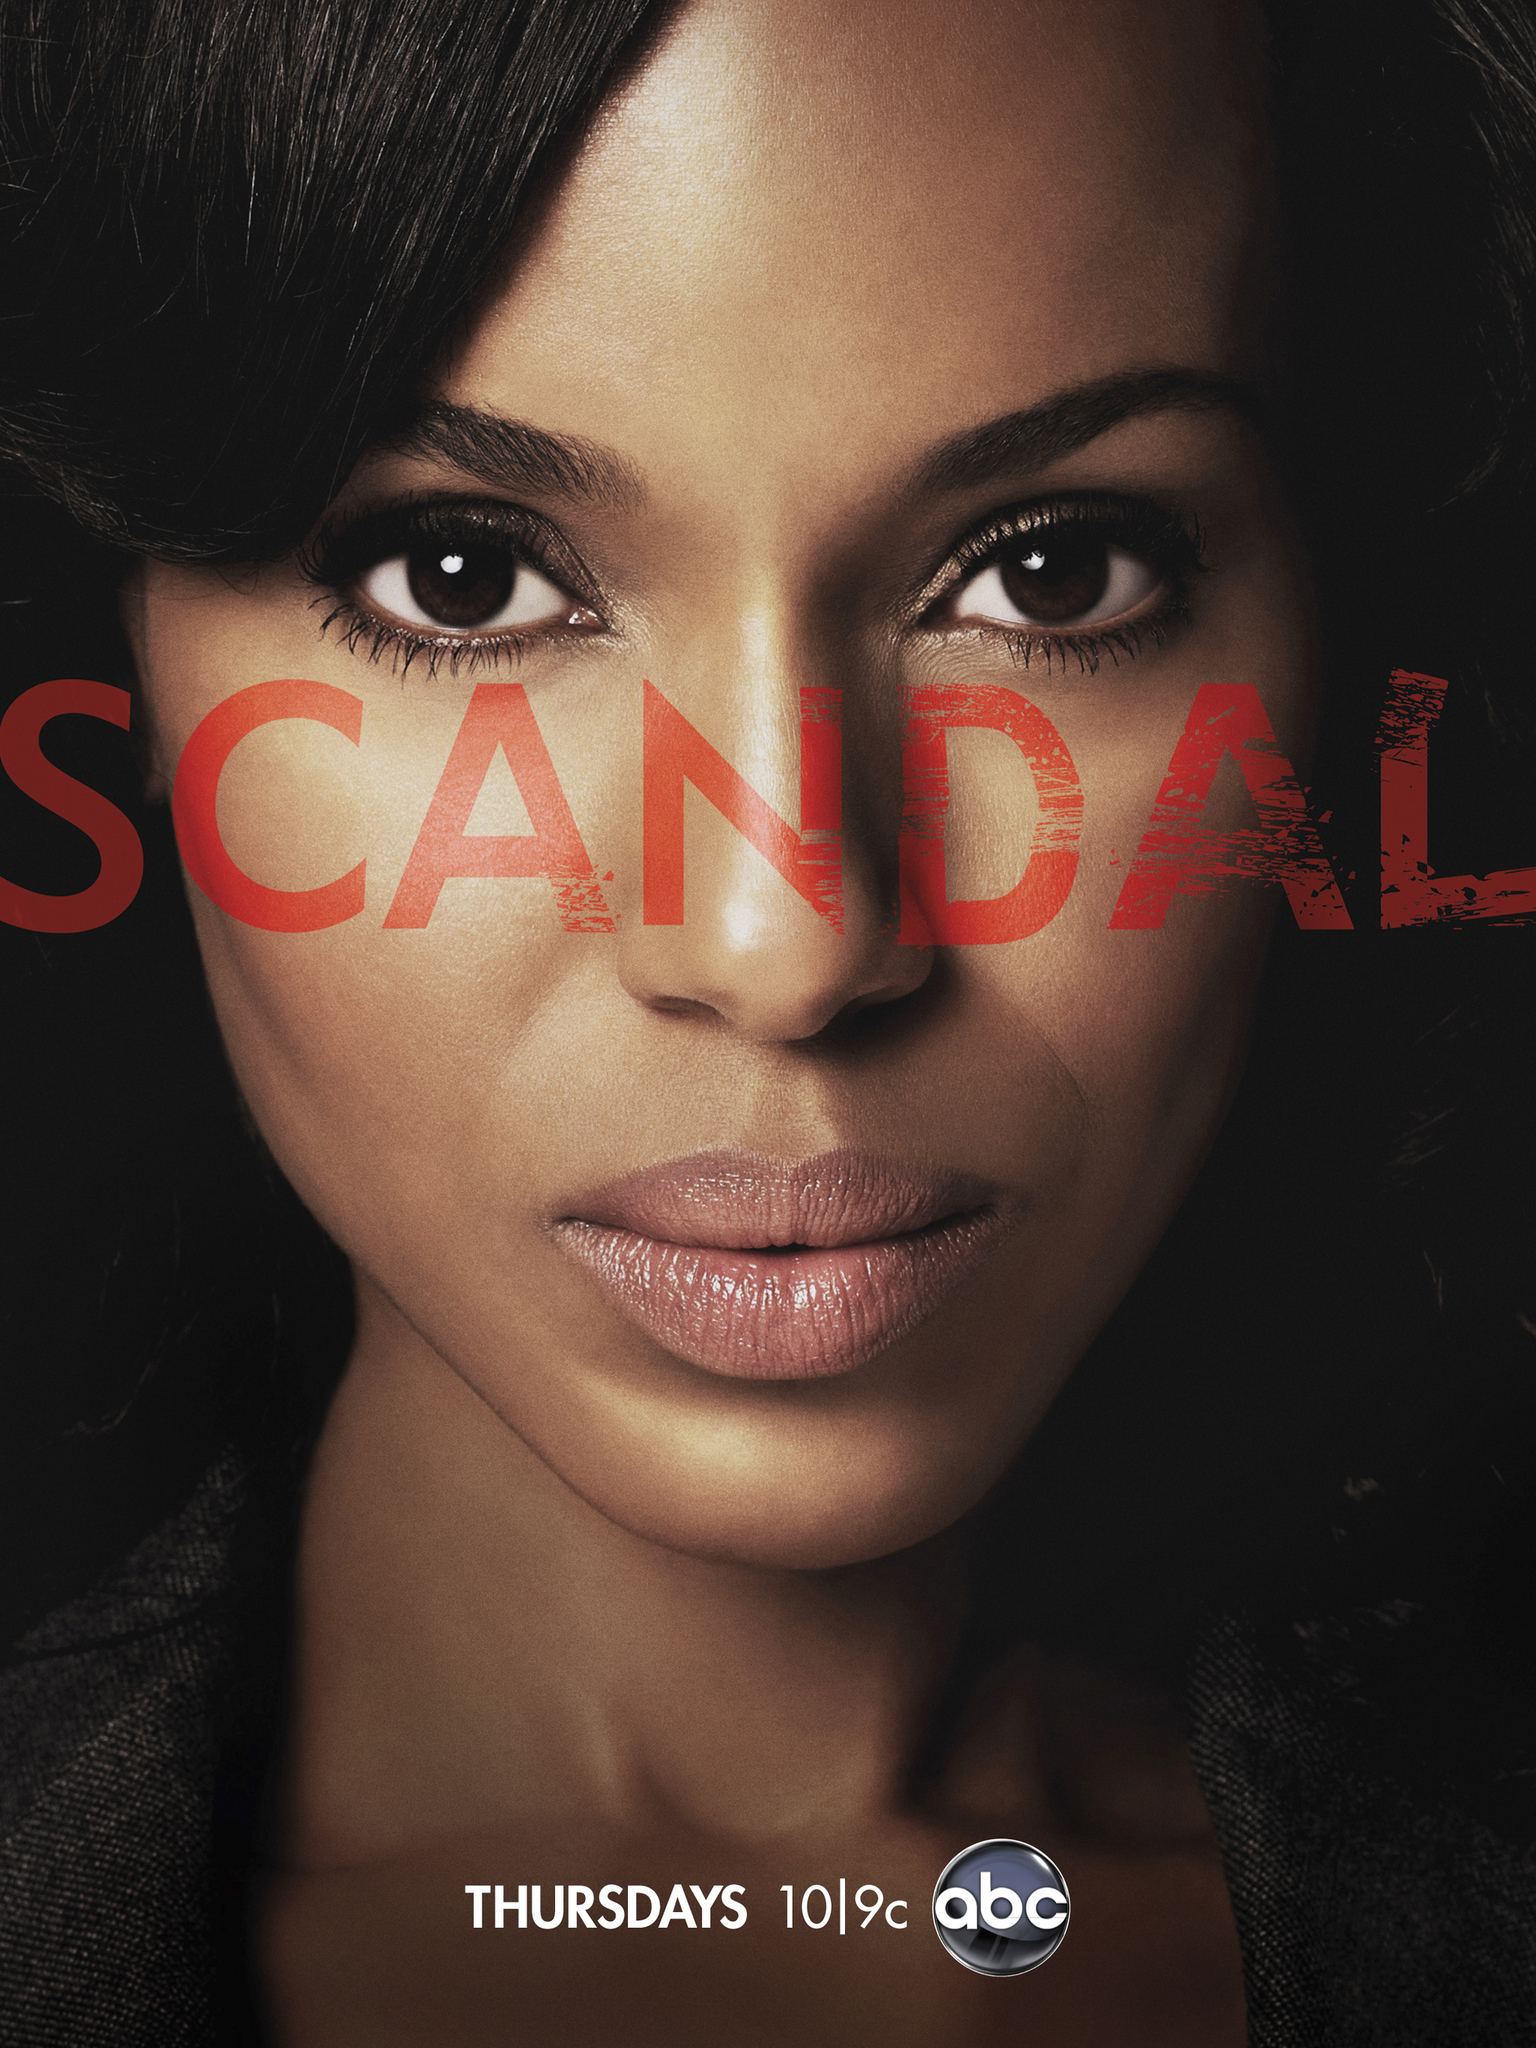 [影集] Scandal (2012~) 1837576_big